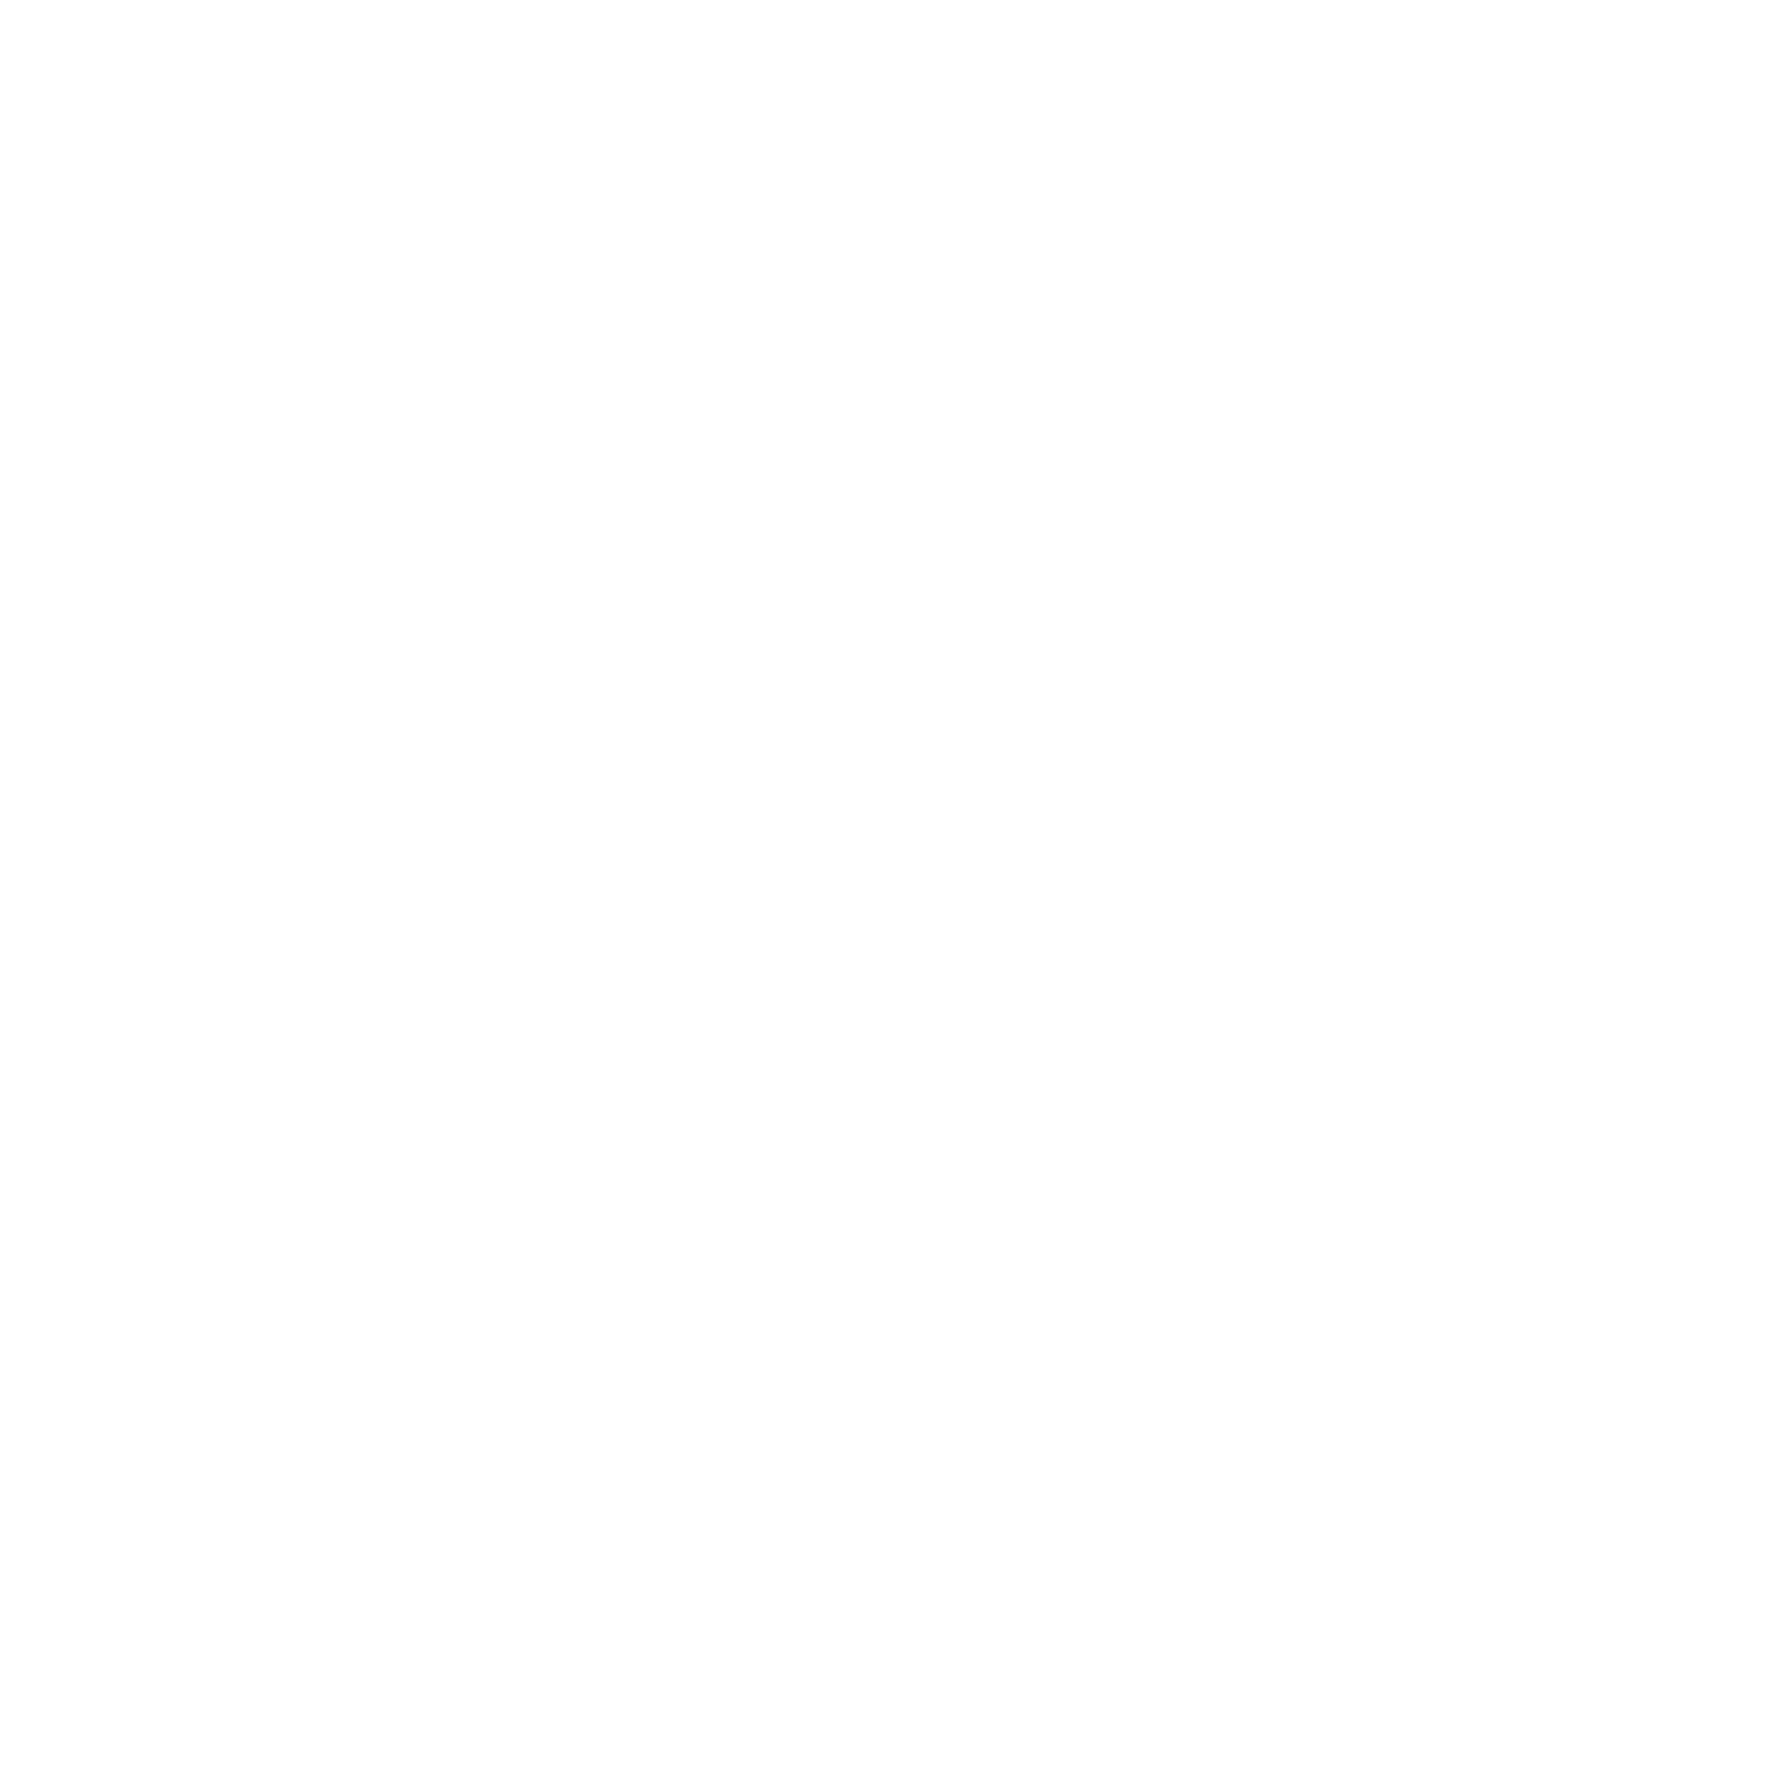 The Room Club Poitiers